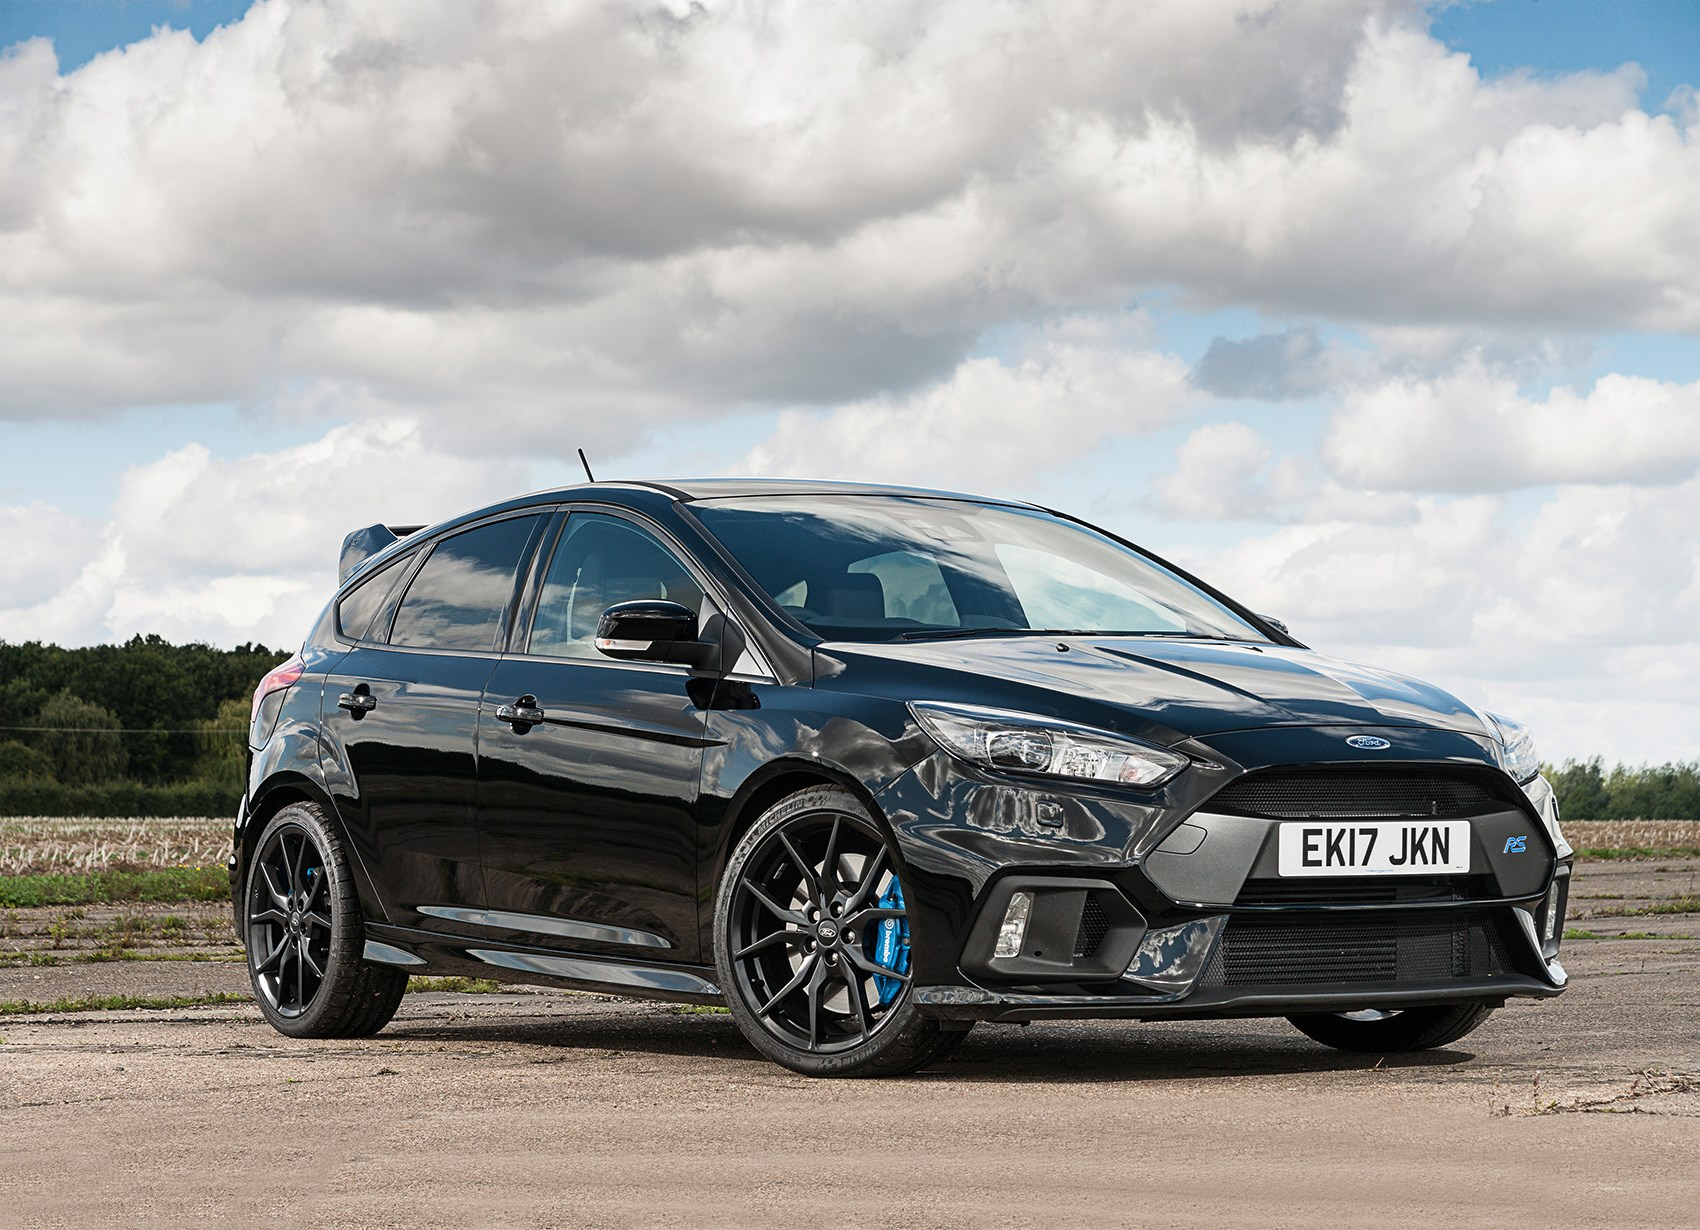 hight resolution of sporty ride still is our new ford focus rs photographed for car by stuart collins